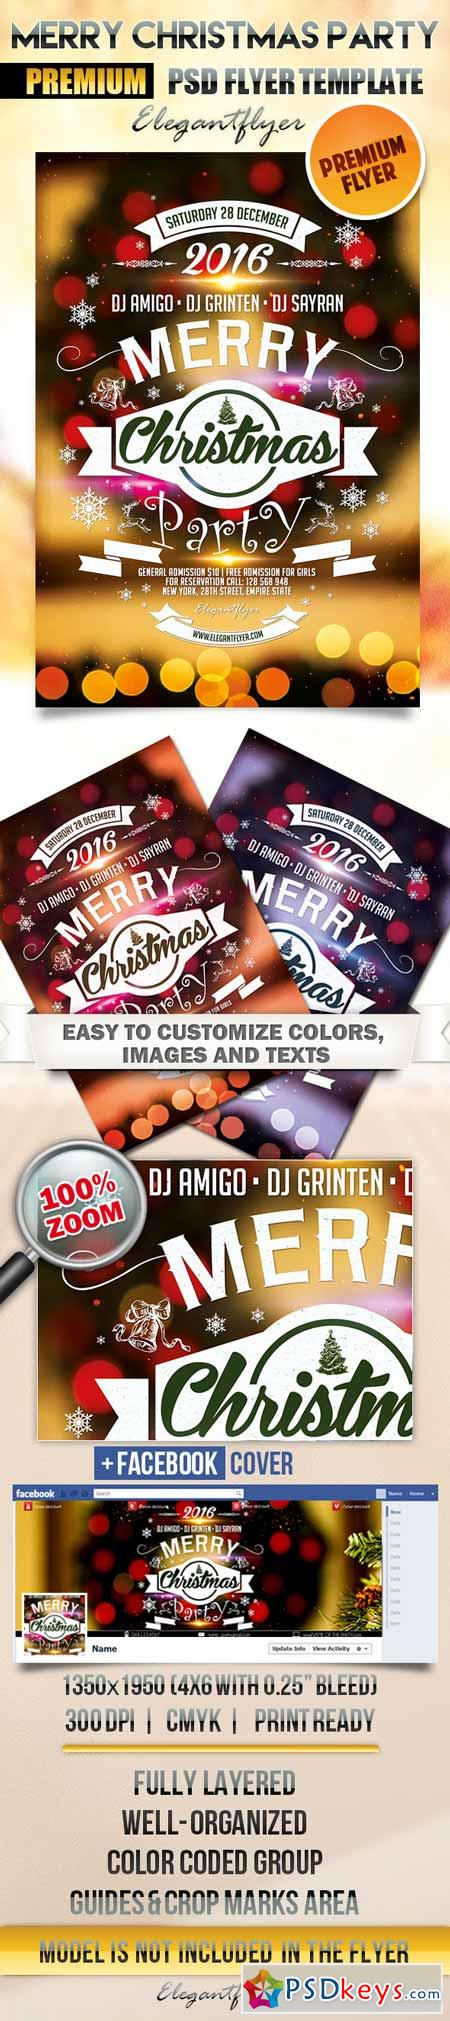 merry christmas party flyer psd template facebook cover merry christmas party flyer psd template facebook cover